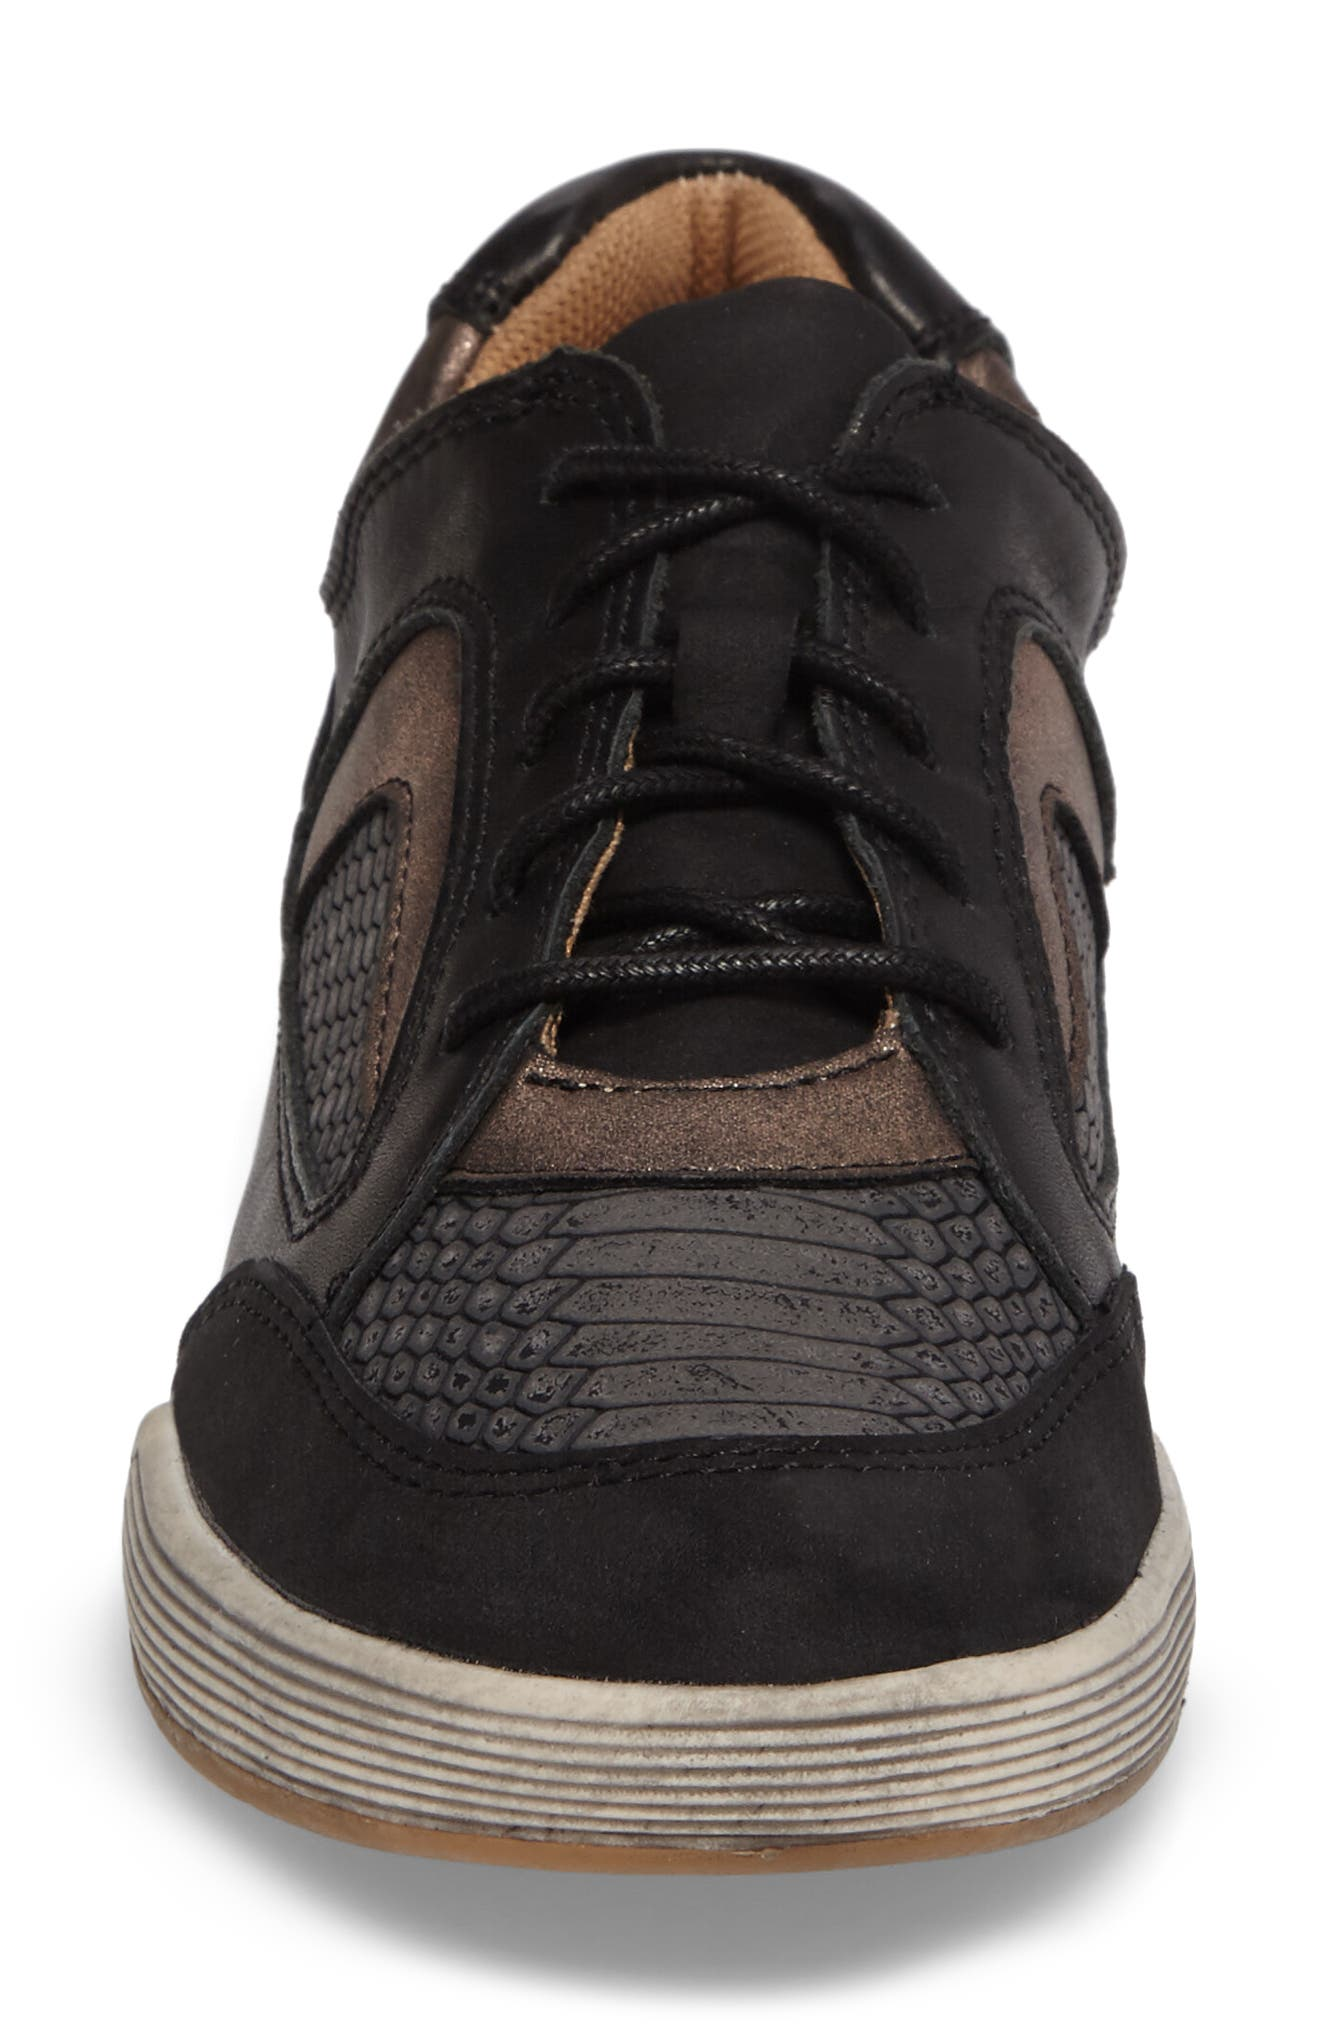 Lemont Snake Embossed Sneaker,                             Alternate thumbnail 4, color,                             BLACK SNAKE PRINT LEATHER